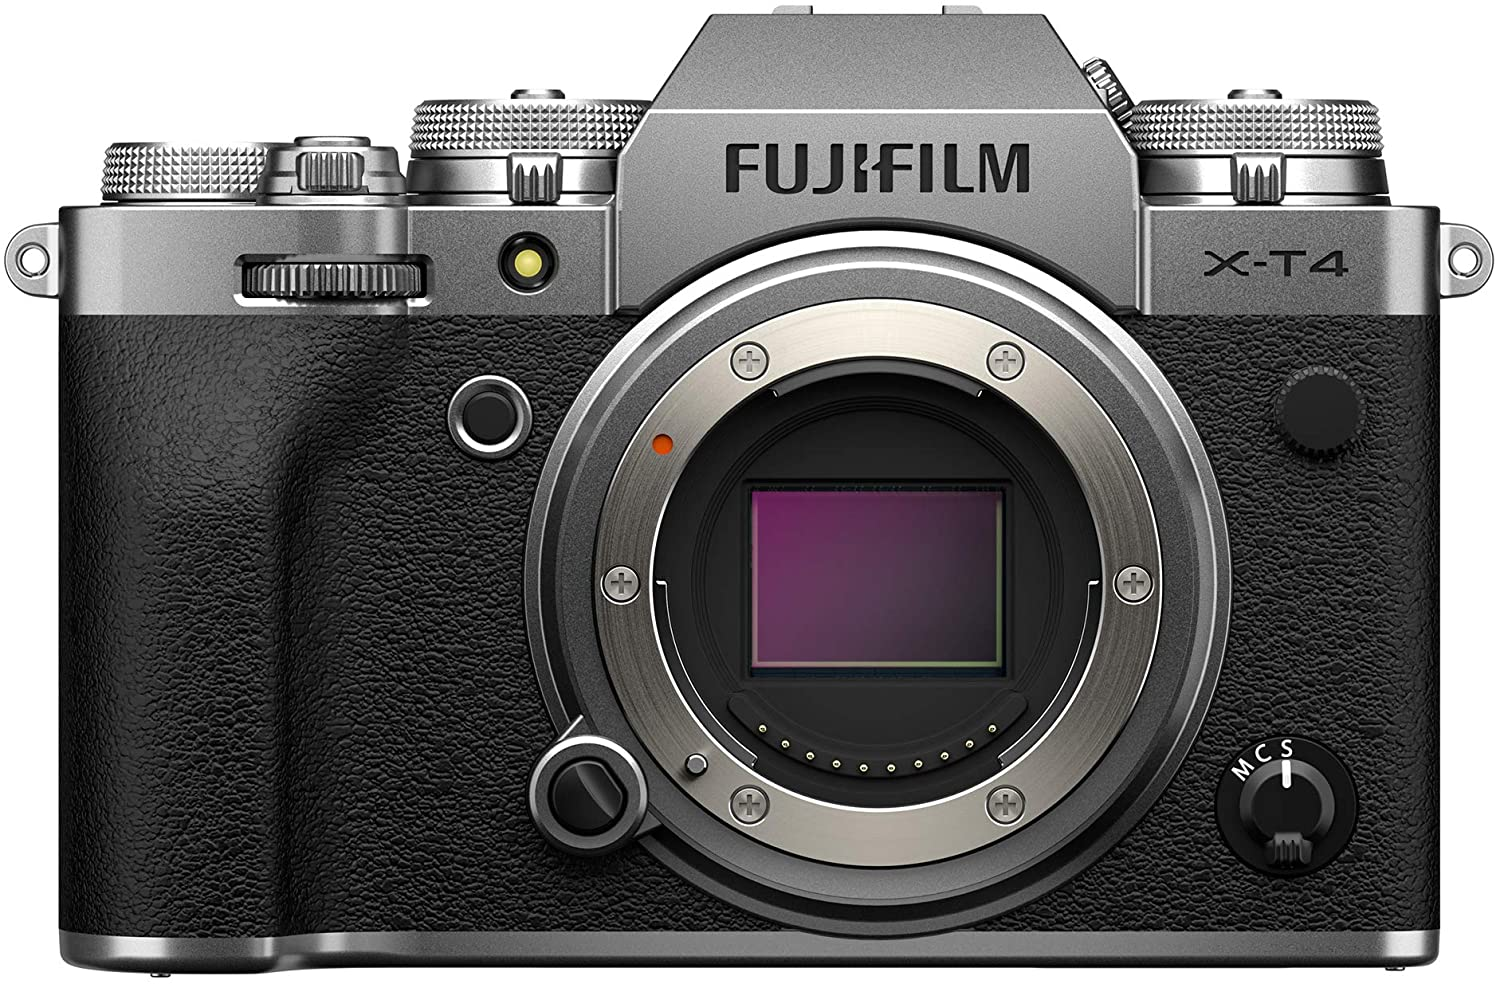 New Firmware Update Ver 1.01 for Fujifilm X-T4 Released